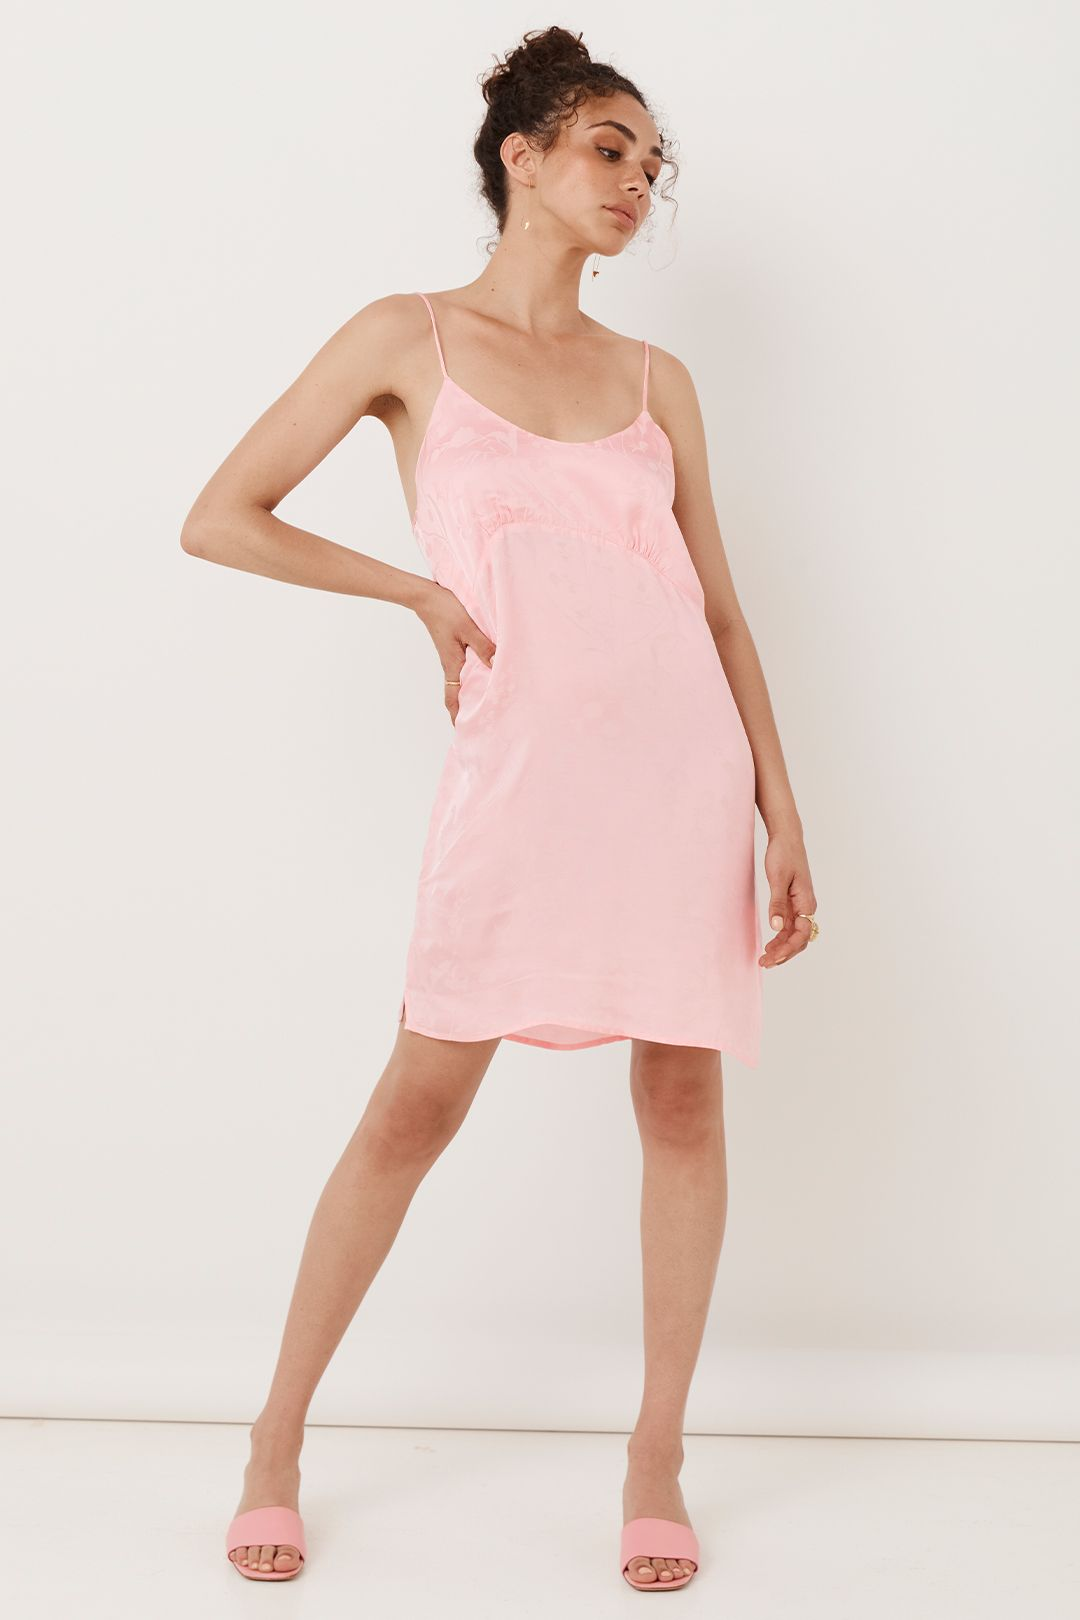 Spell Verona Mini Slip Dress 90s Pink Pastel